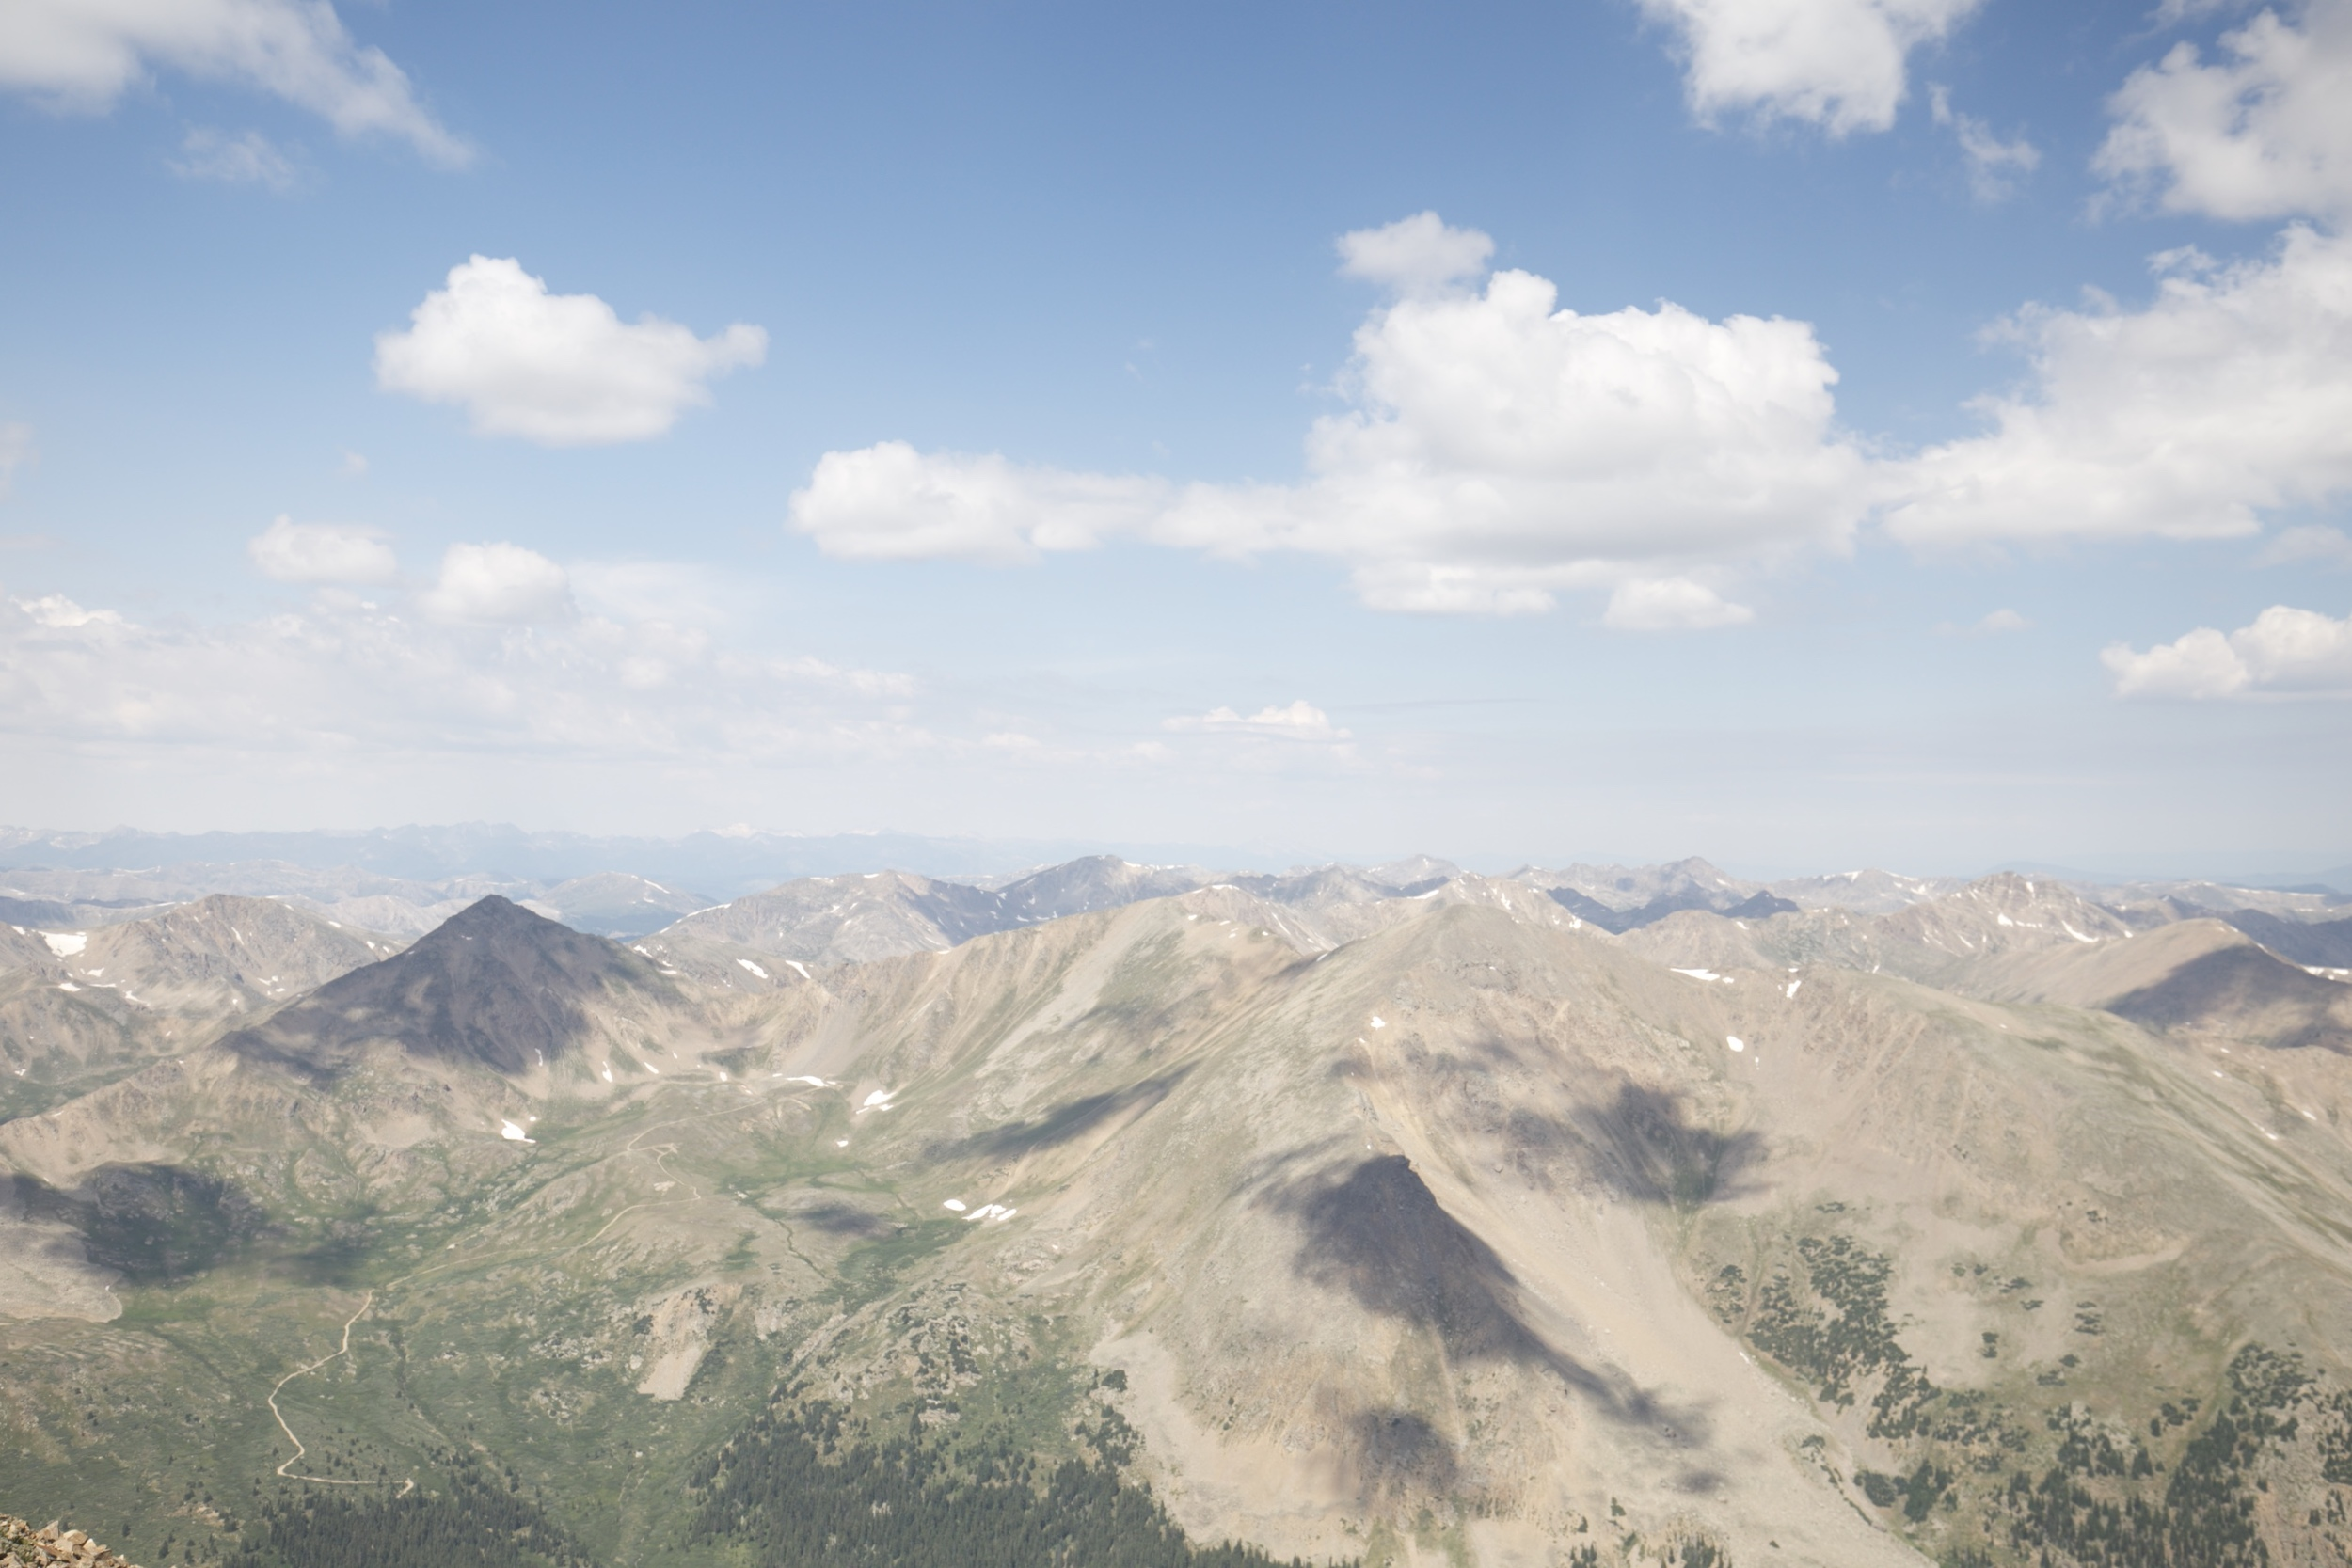 The view of the Rocky Mountains from Mount Elbert, Colorado.